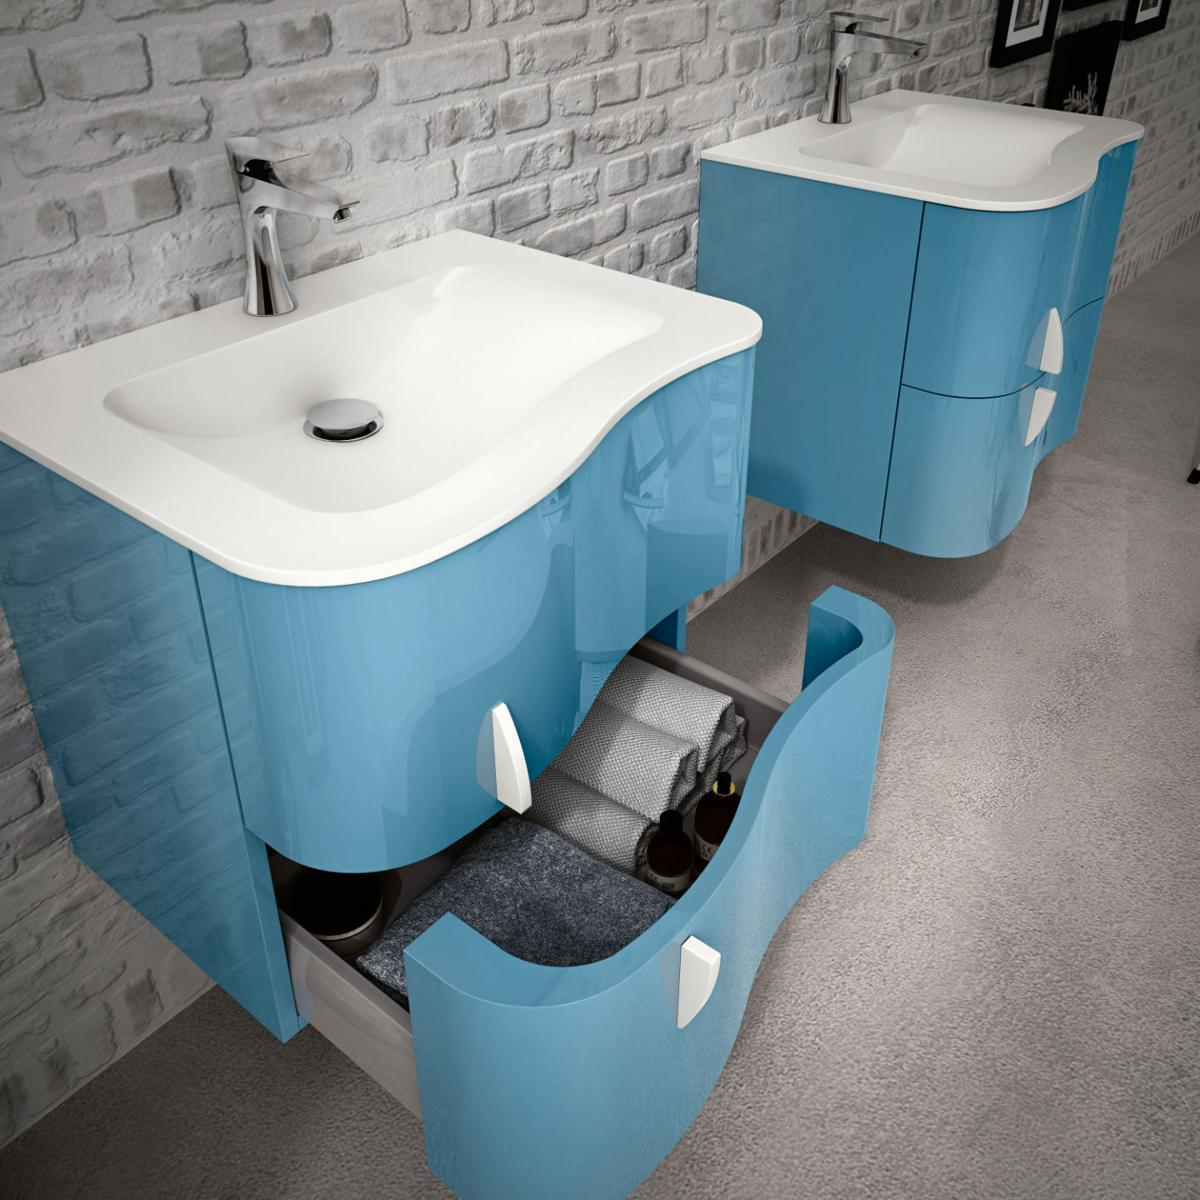 Enhance bathrooms with more than fluffy towels | Life & People ...